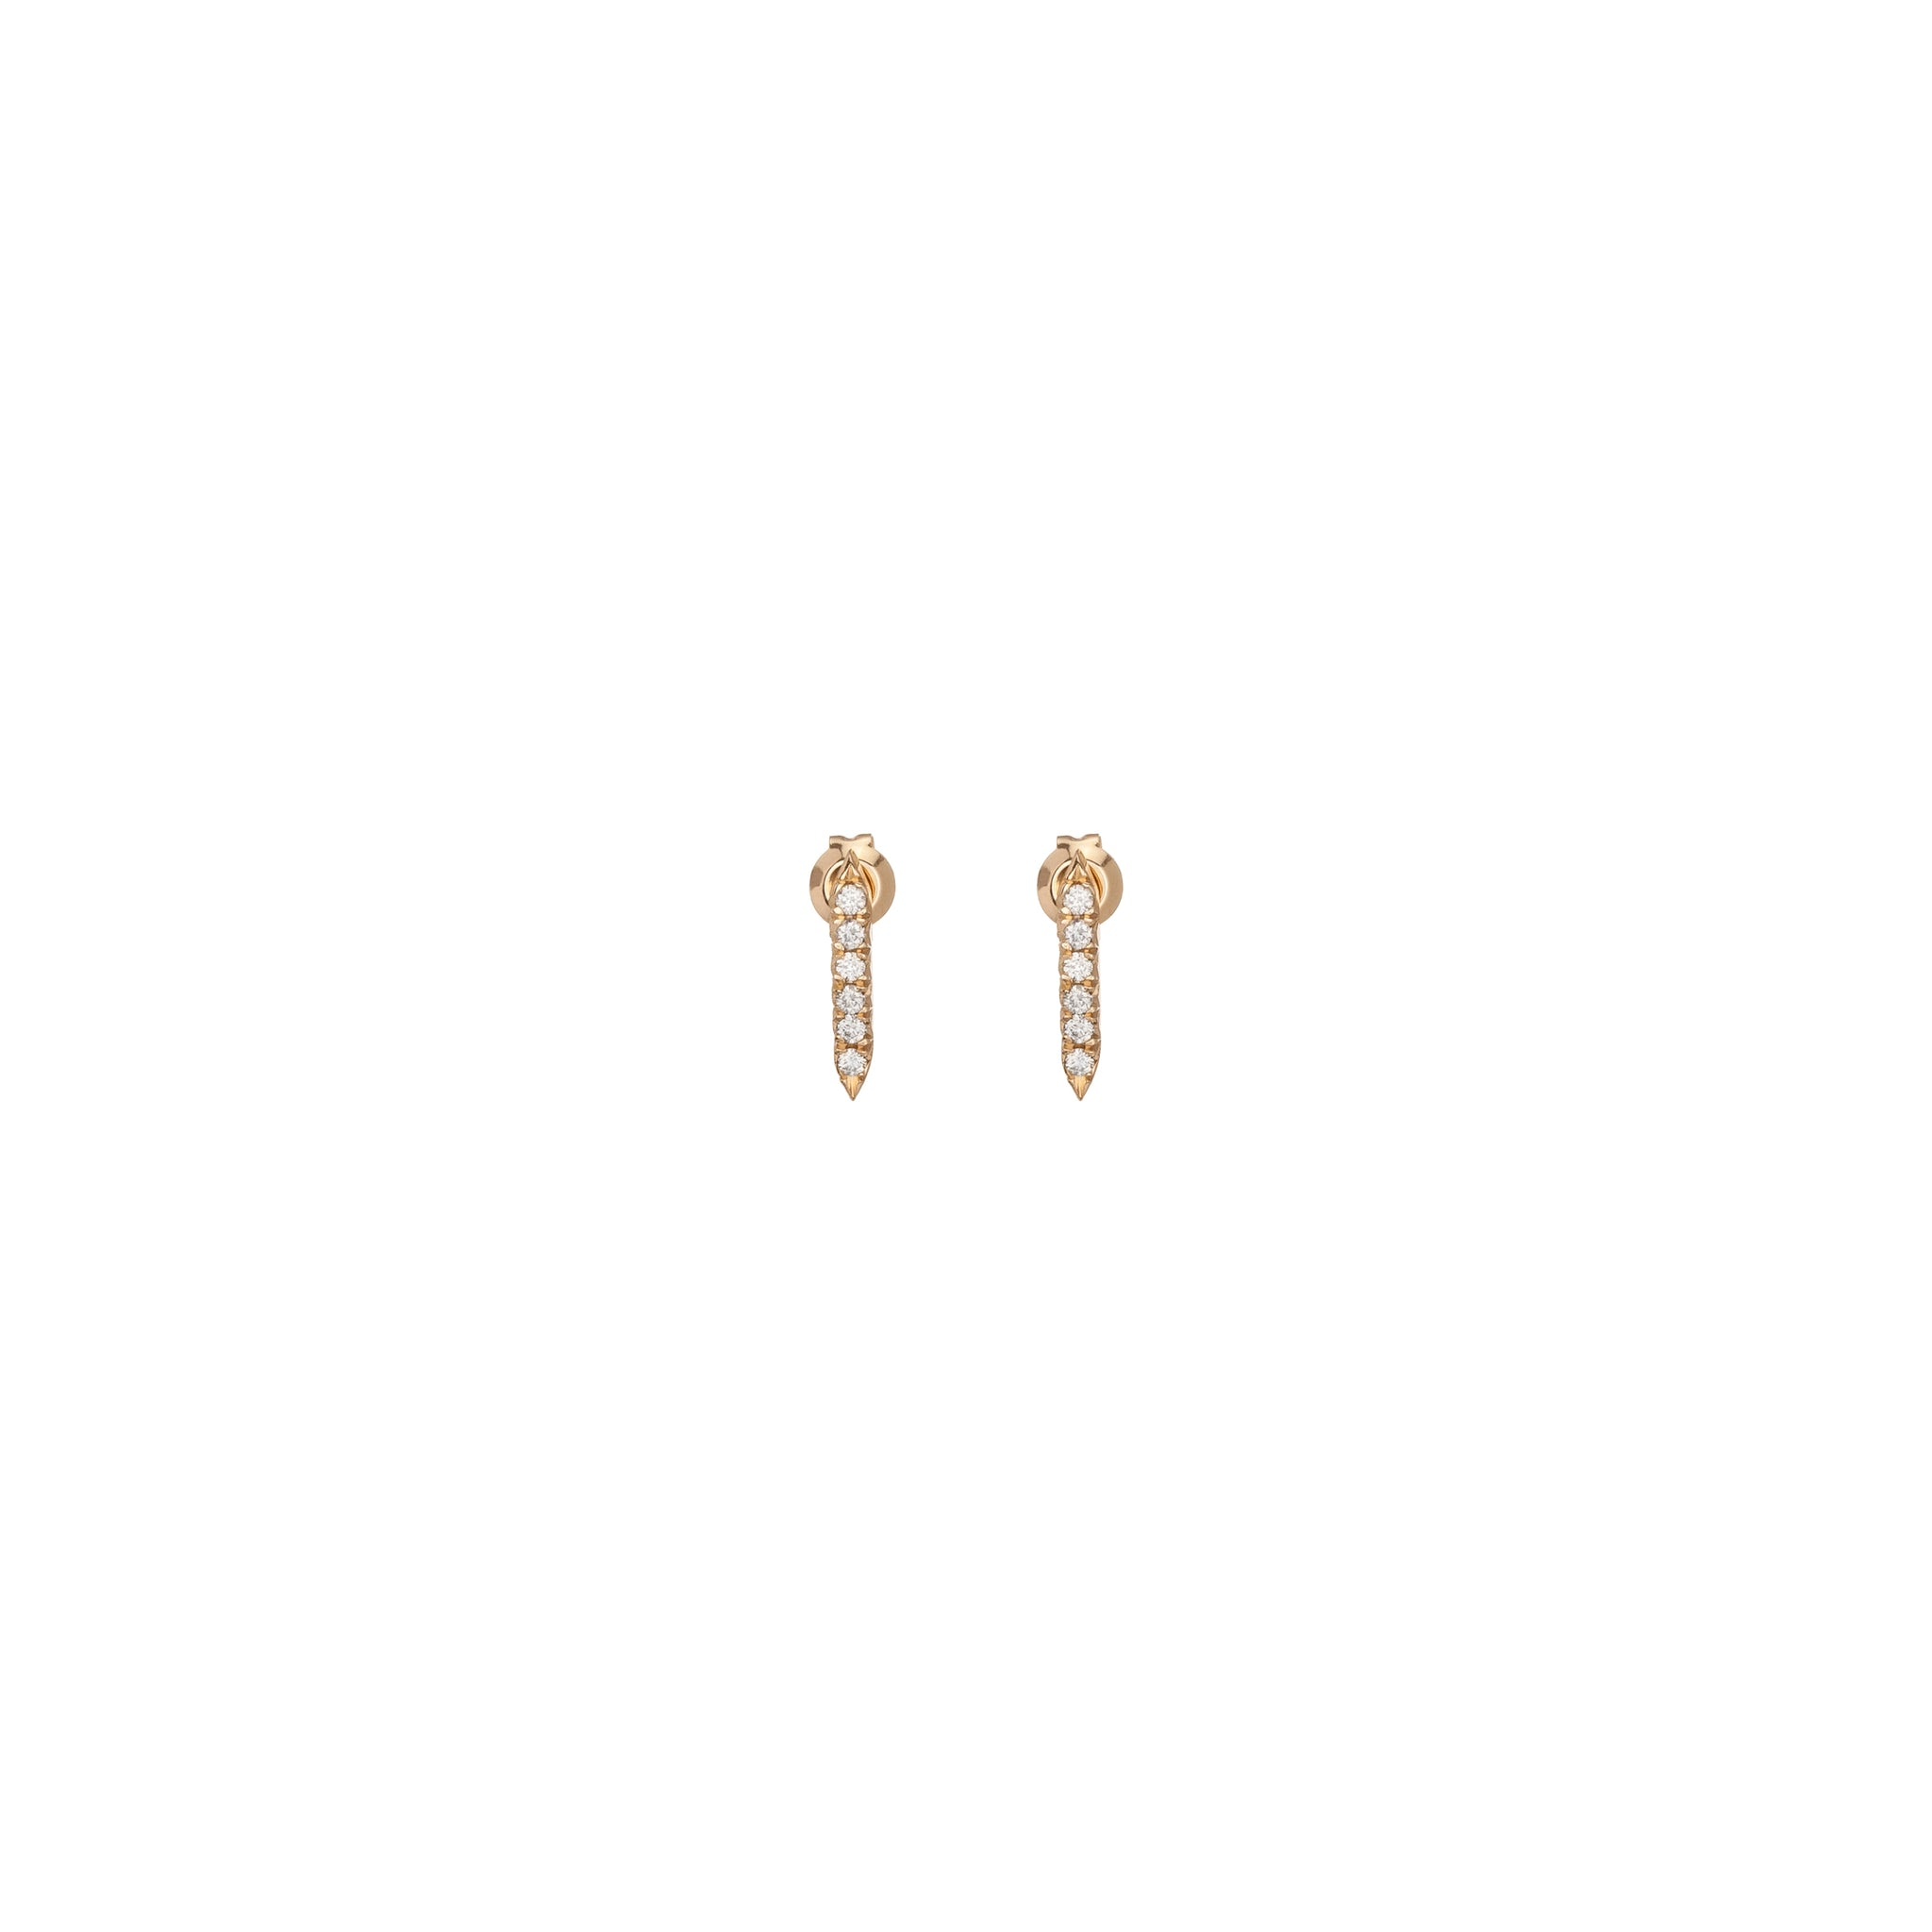 ESSENTIAL PIN EARRINGS WITH PAVE WHITE DIAMONDS